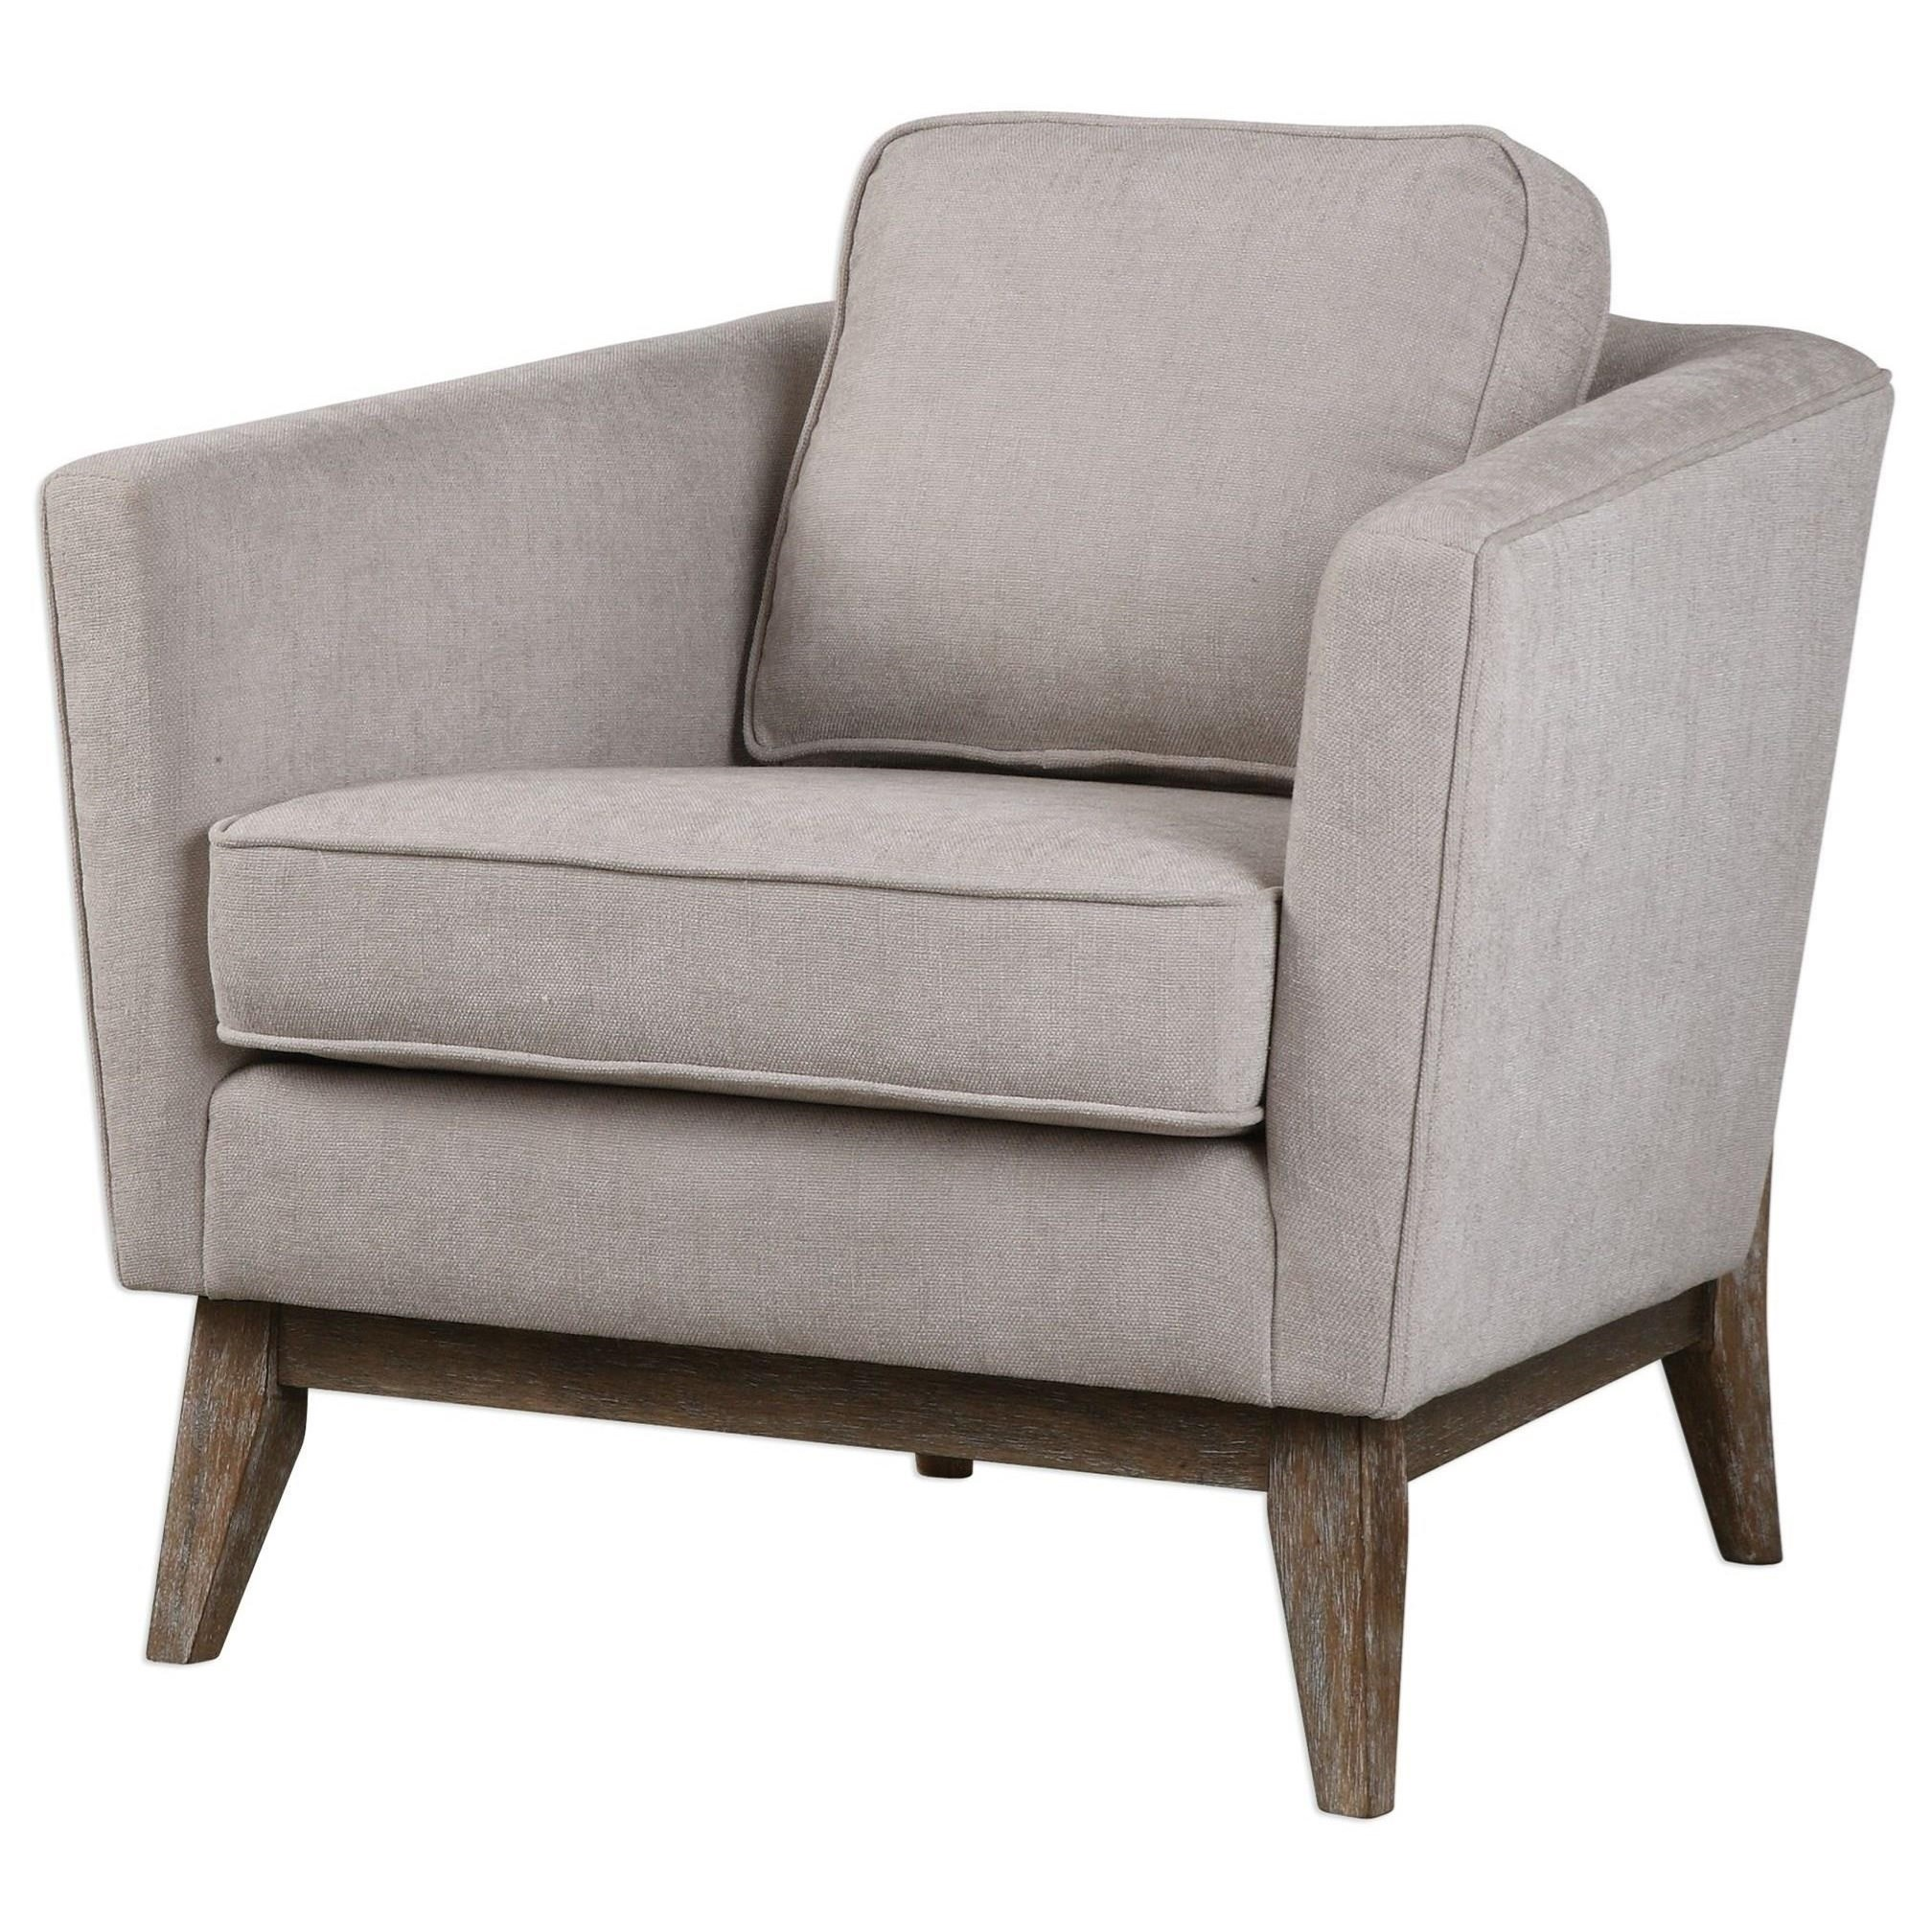 Accent Furniture - Accent Chairs Varner Beige Linen Accent Chair by Uttermost at Michael Alan Furniture & Design